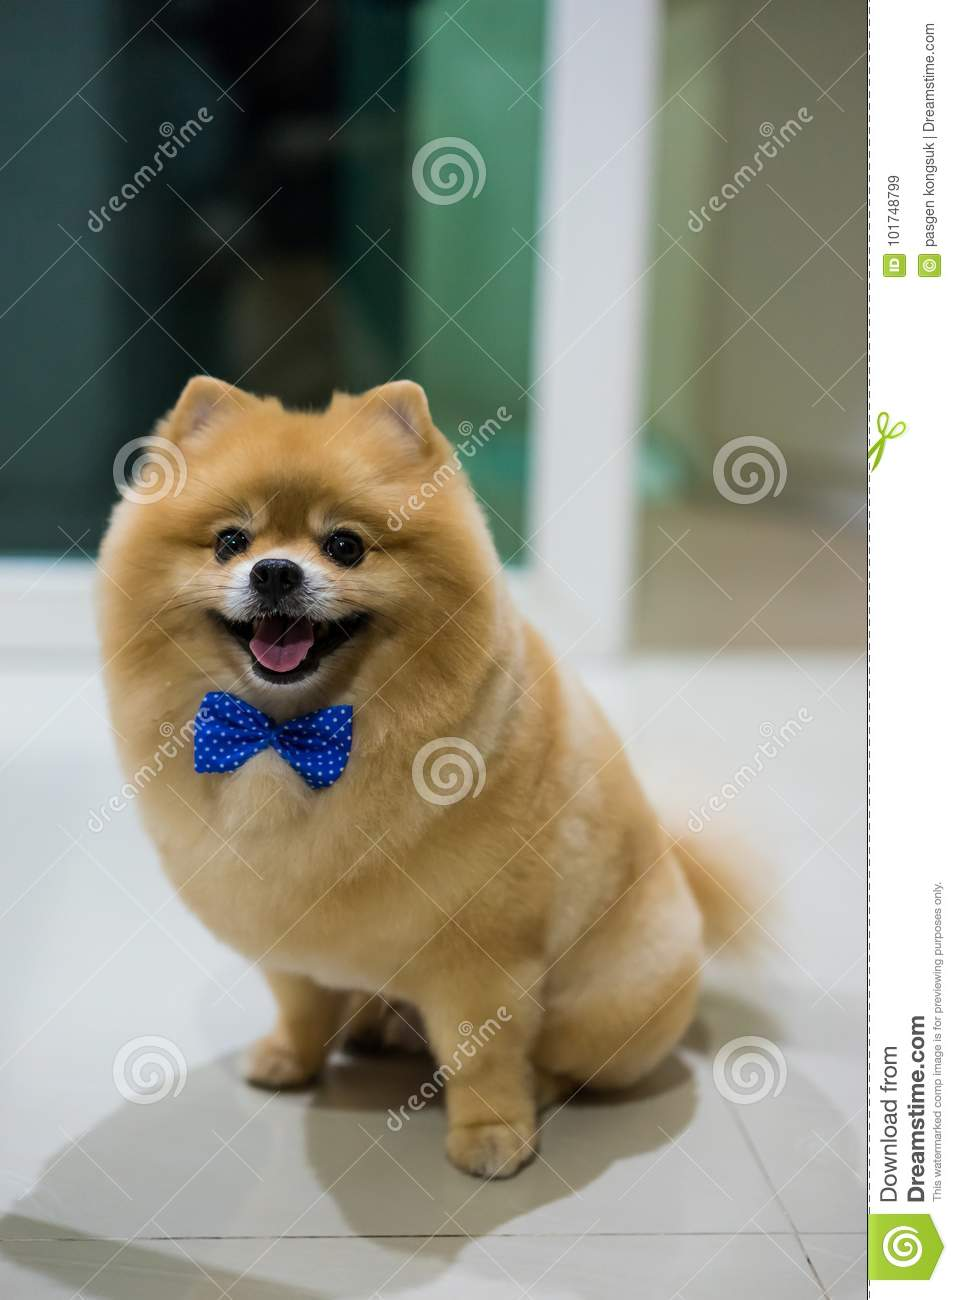 Pomeranian Dog Cute Pets Short Hair Style In Home Selective Focus On Eye Stock Image Image Of Happy Breed 101748799